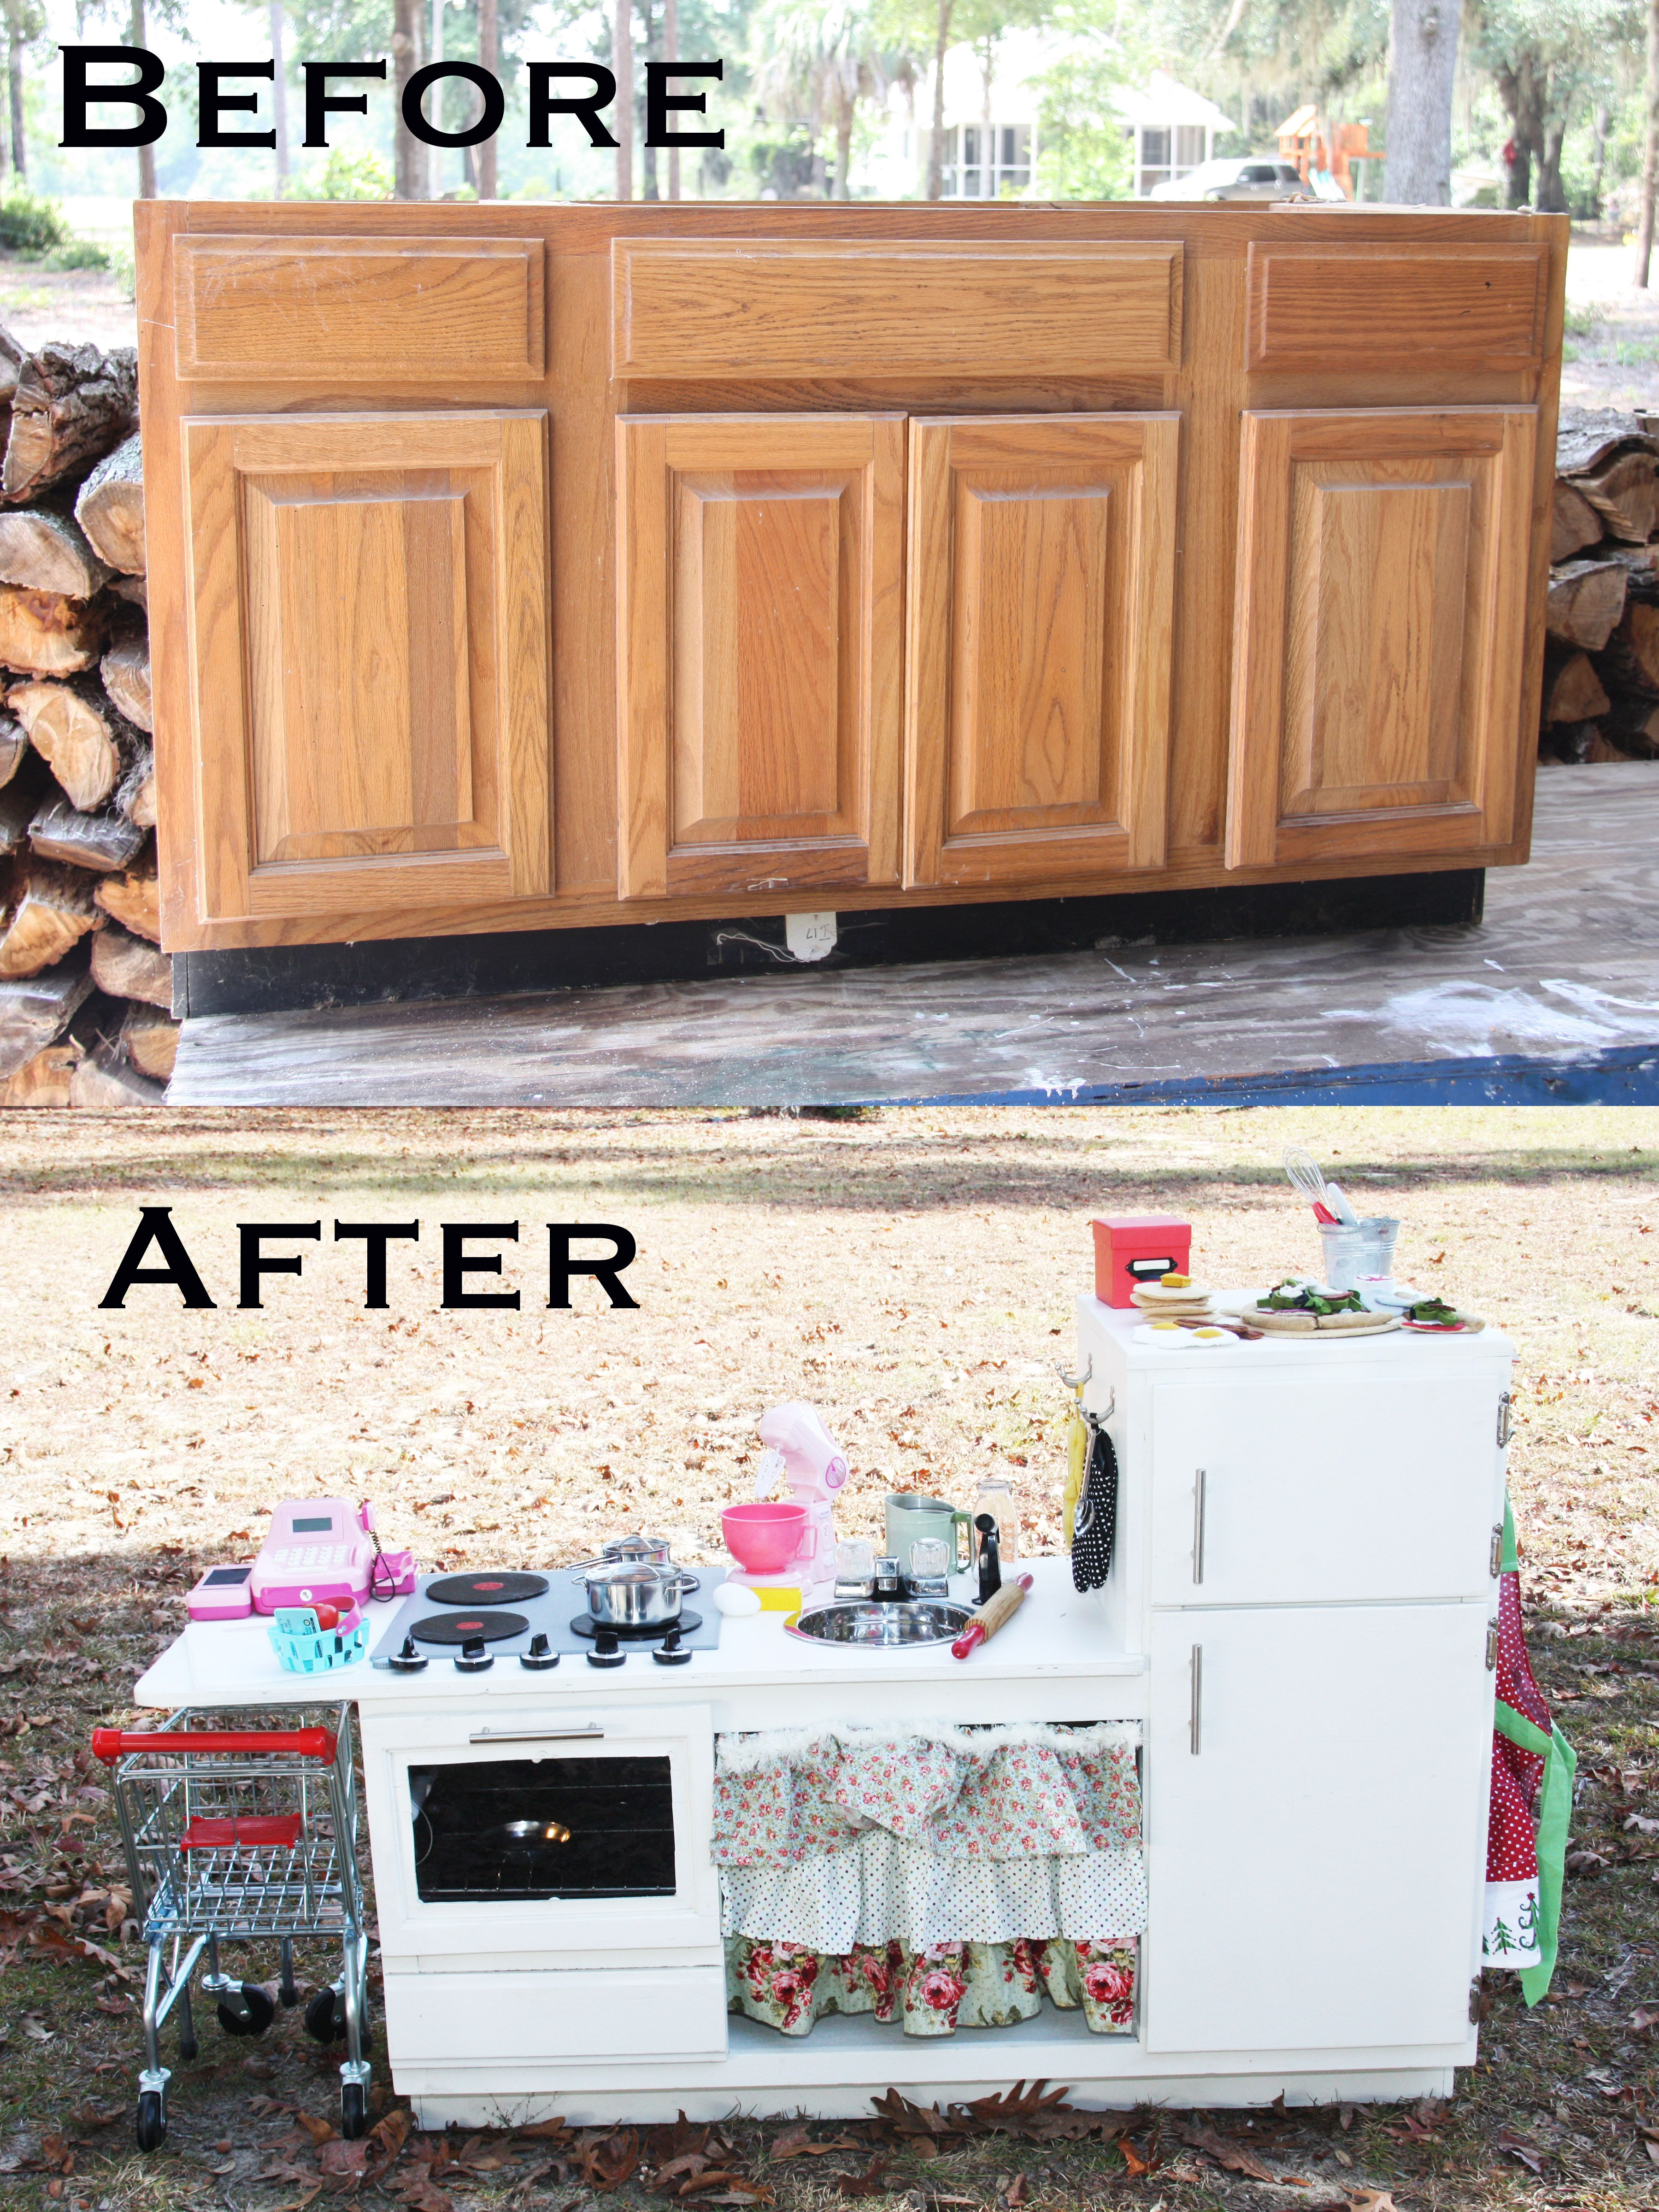 Upcycled Kitchen Upcycled Kitchen Cabinets To Play Kitchen I Added Some Handmade